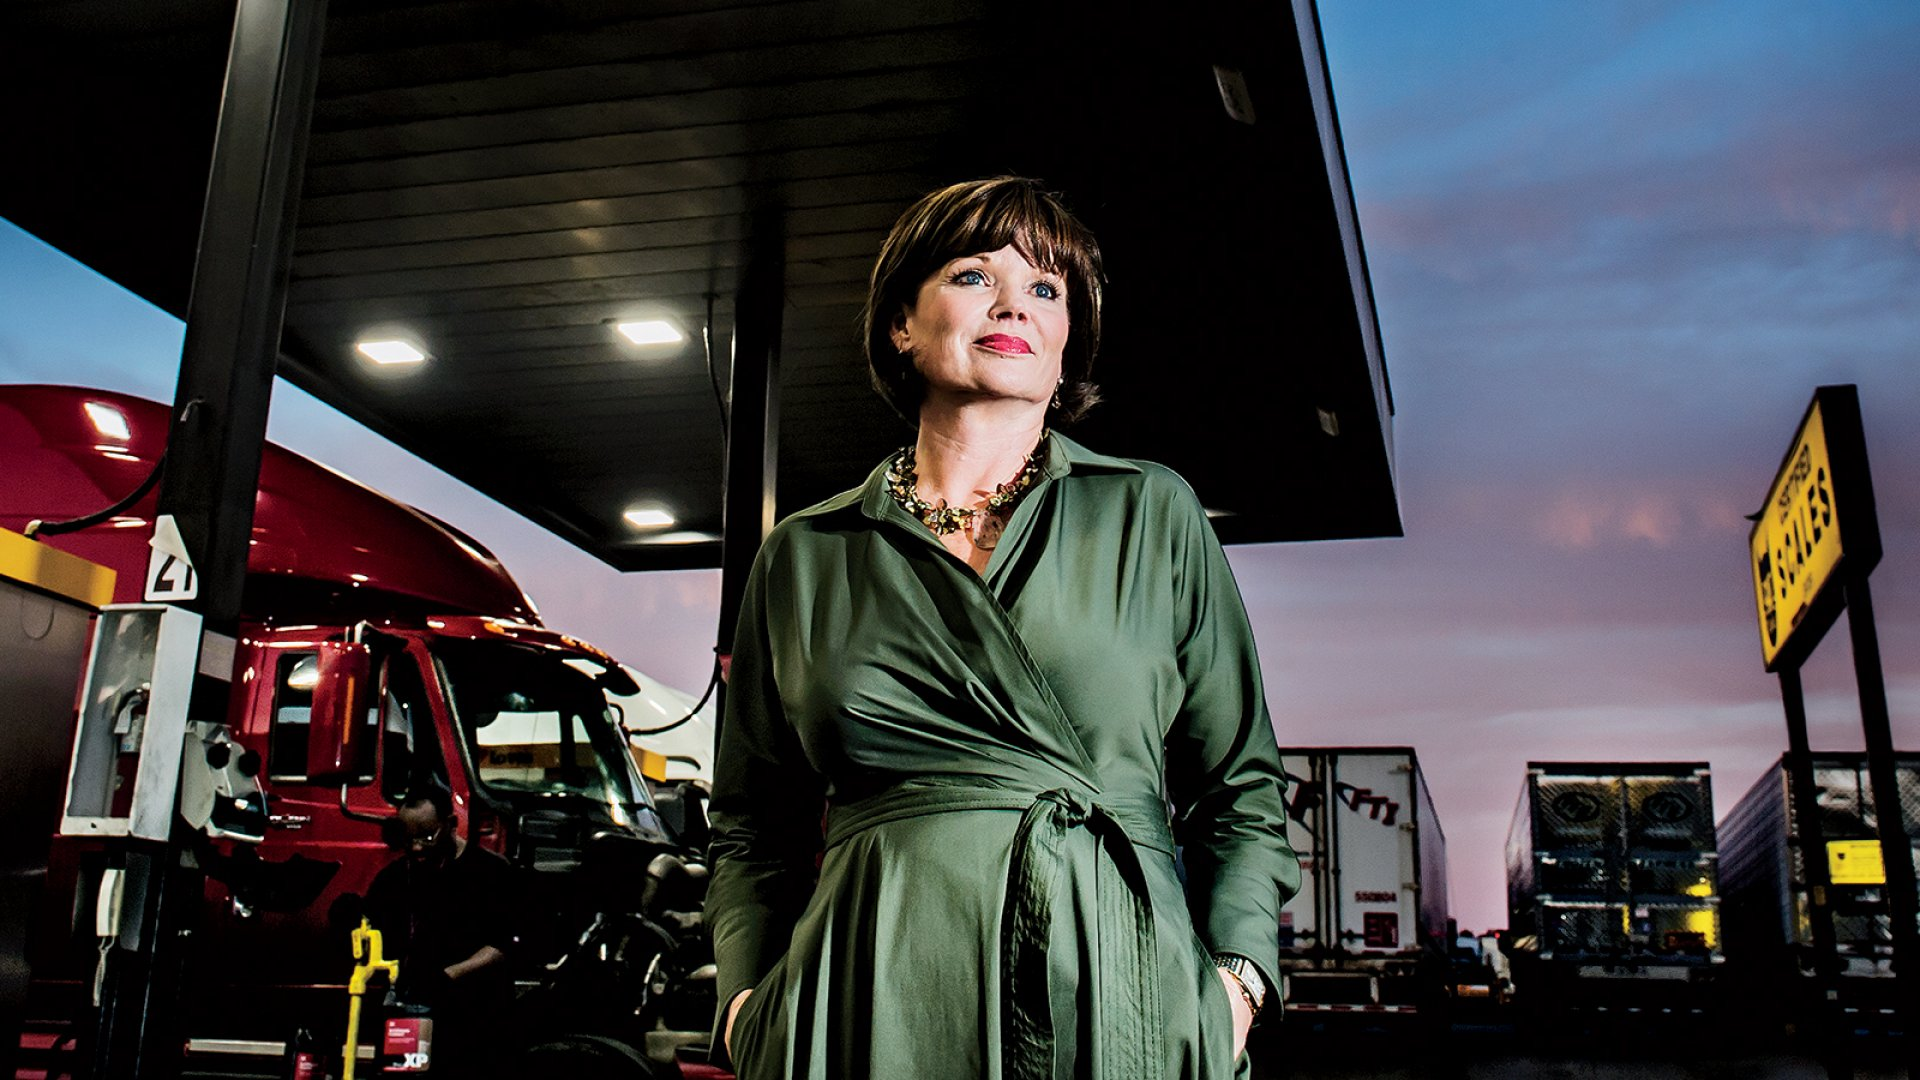 After surviving an abusive marriage, not much intimidates Tana Greene, including one of the most conservative industries on earth: trucking.